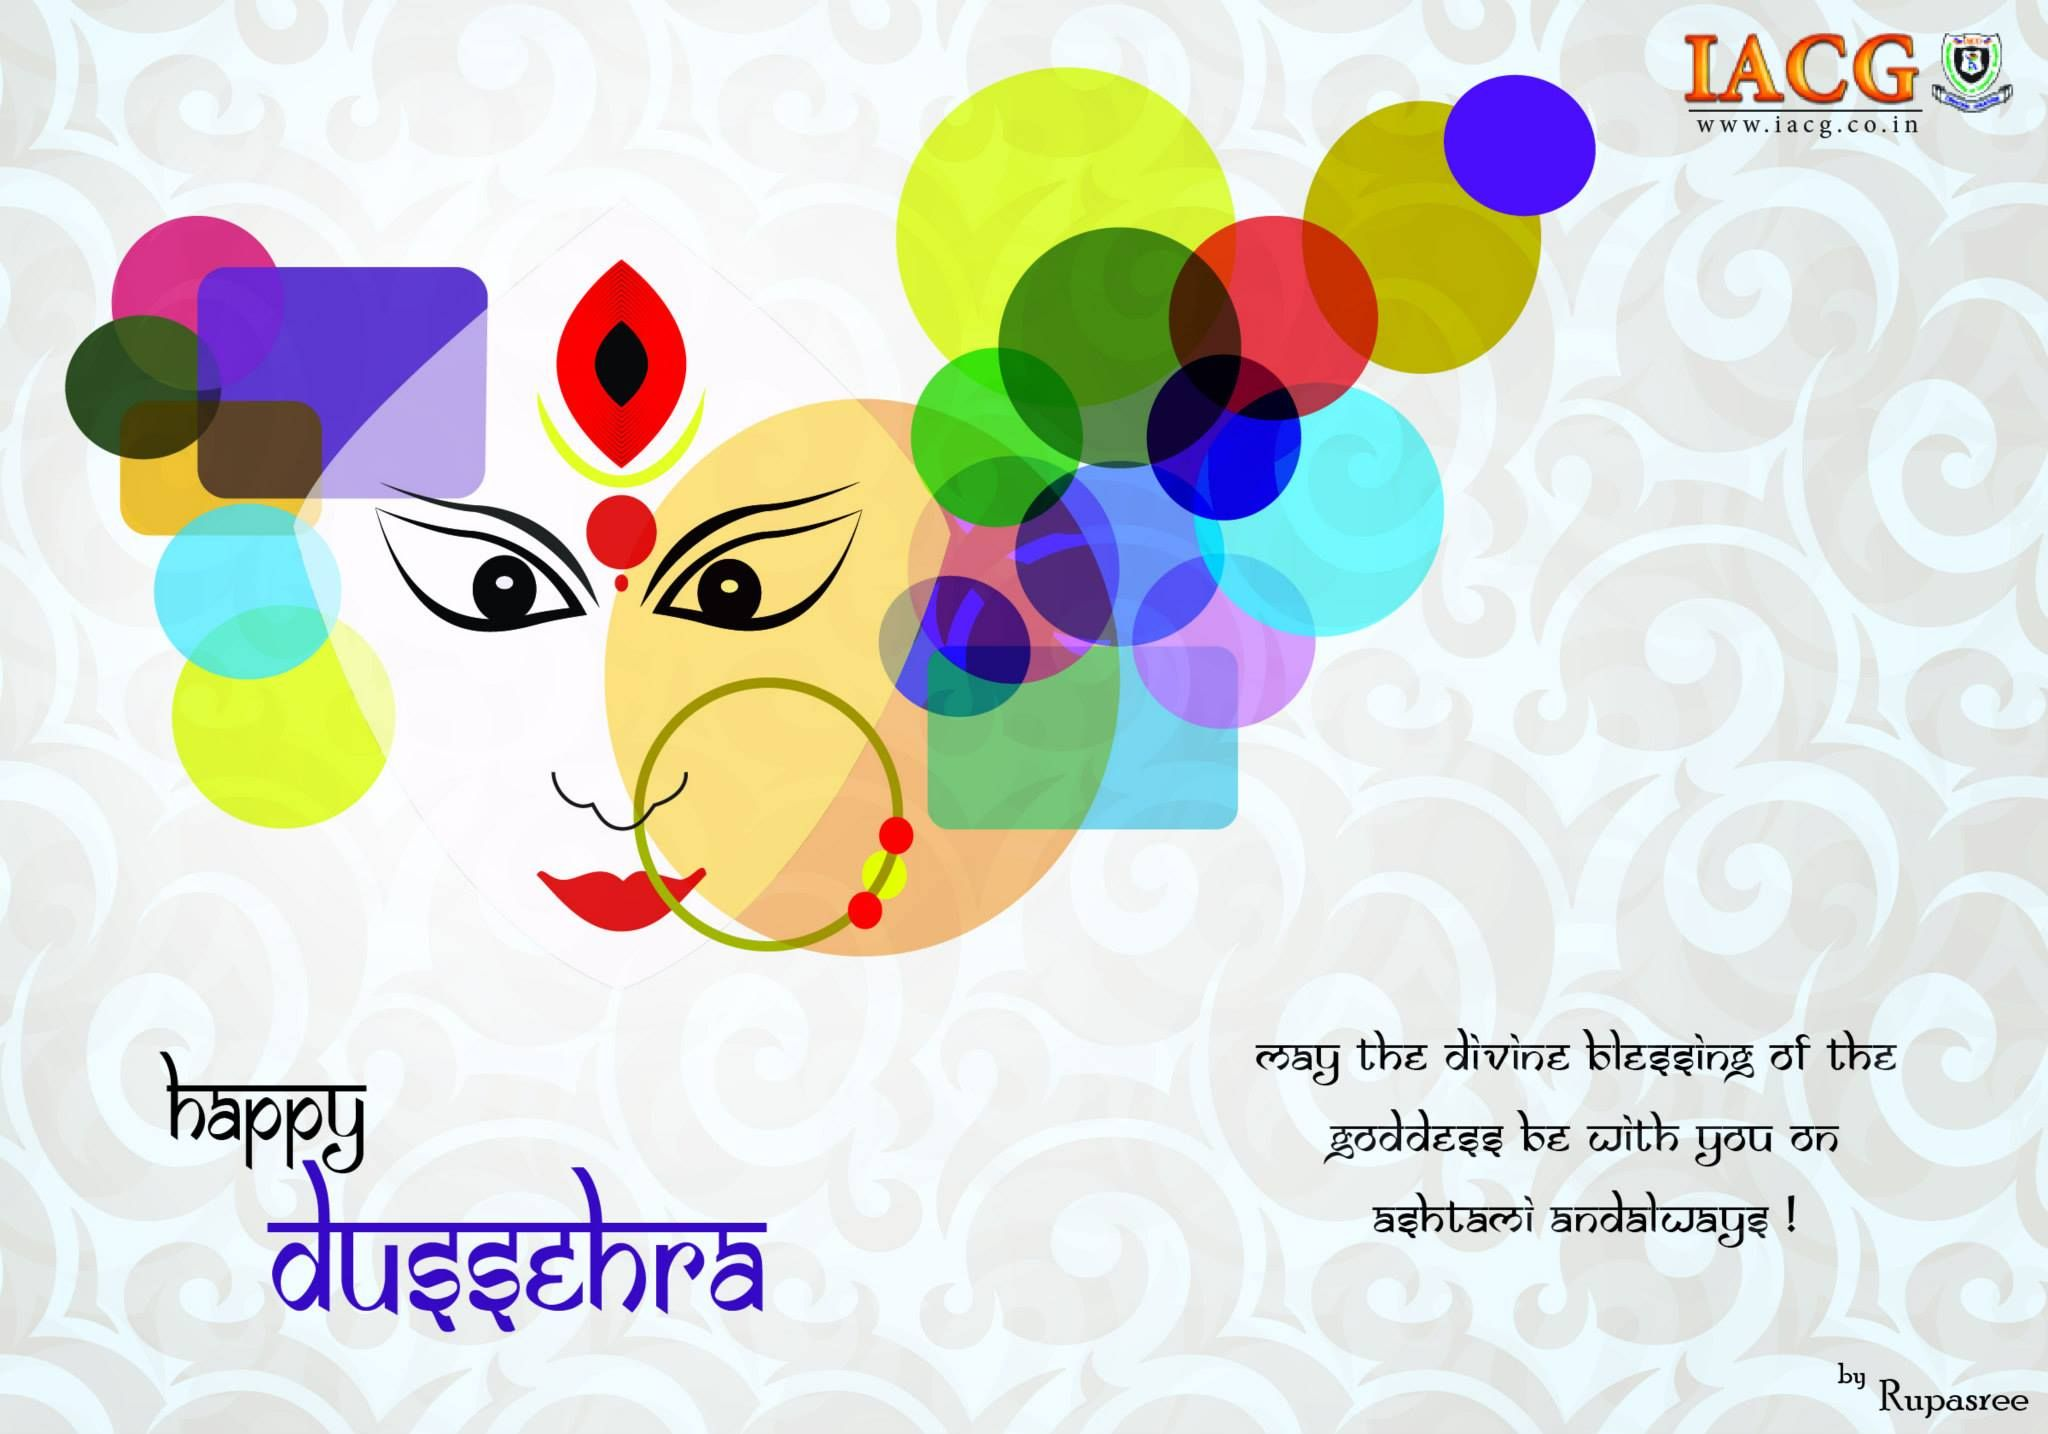 Dussehra Greeting Cards Done By Iacg Students Dusshera Greeting